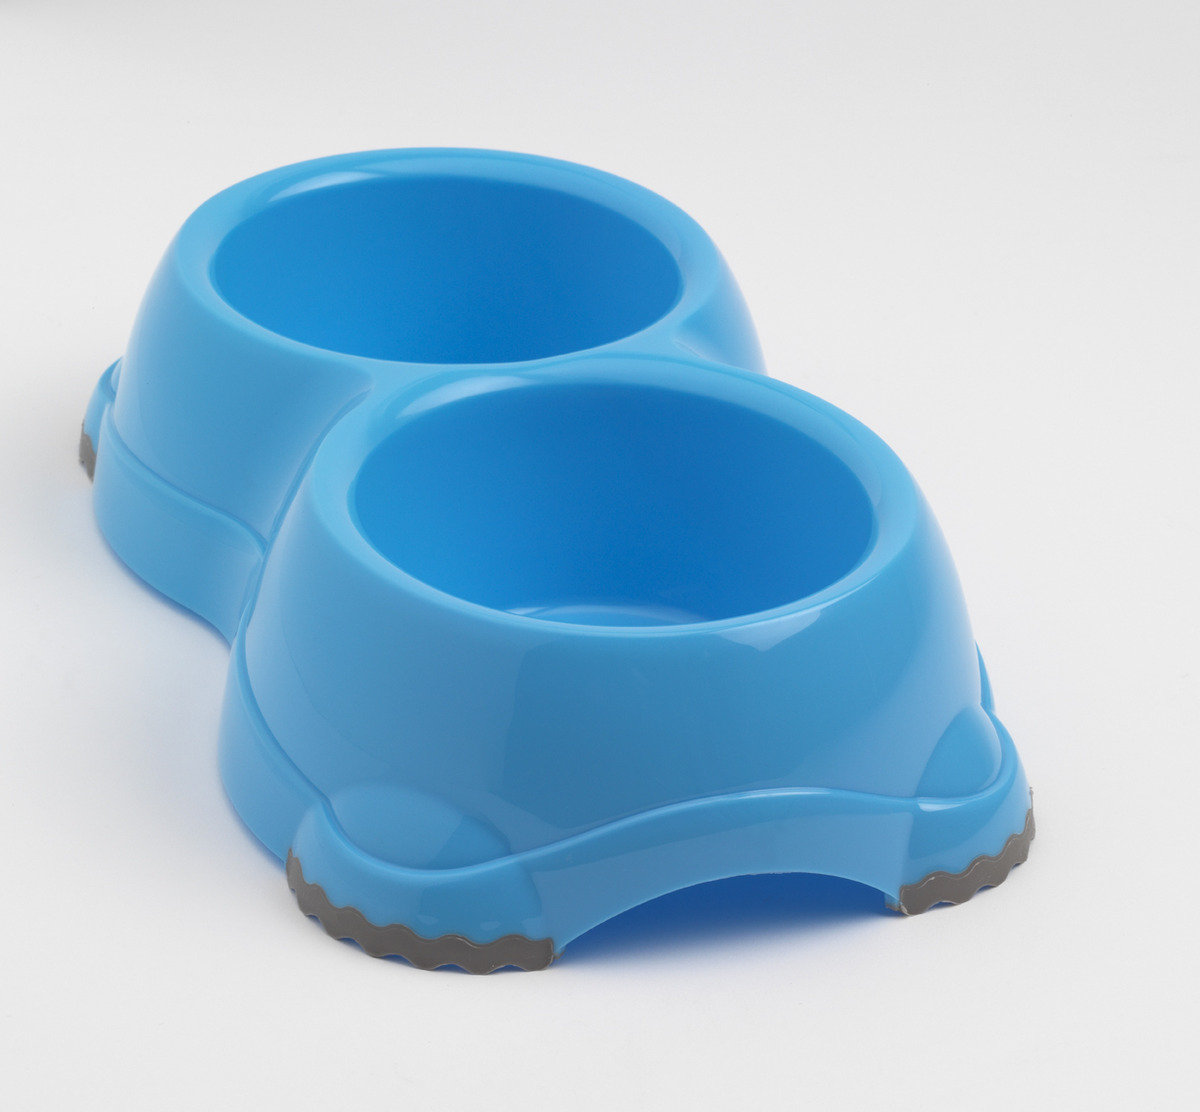 MPH106-119 Double Smarty Bowl H106 (Non-slip feet) - Blue (Import from Europe)